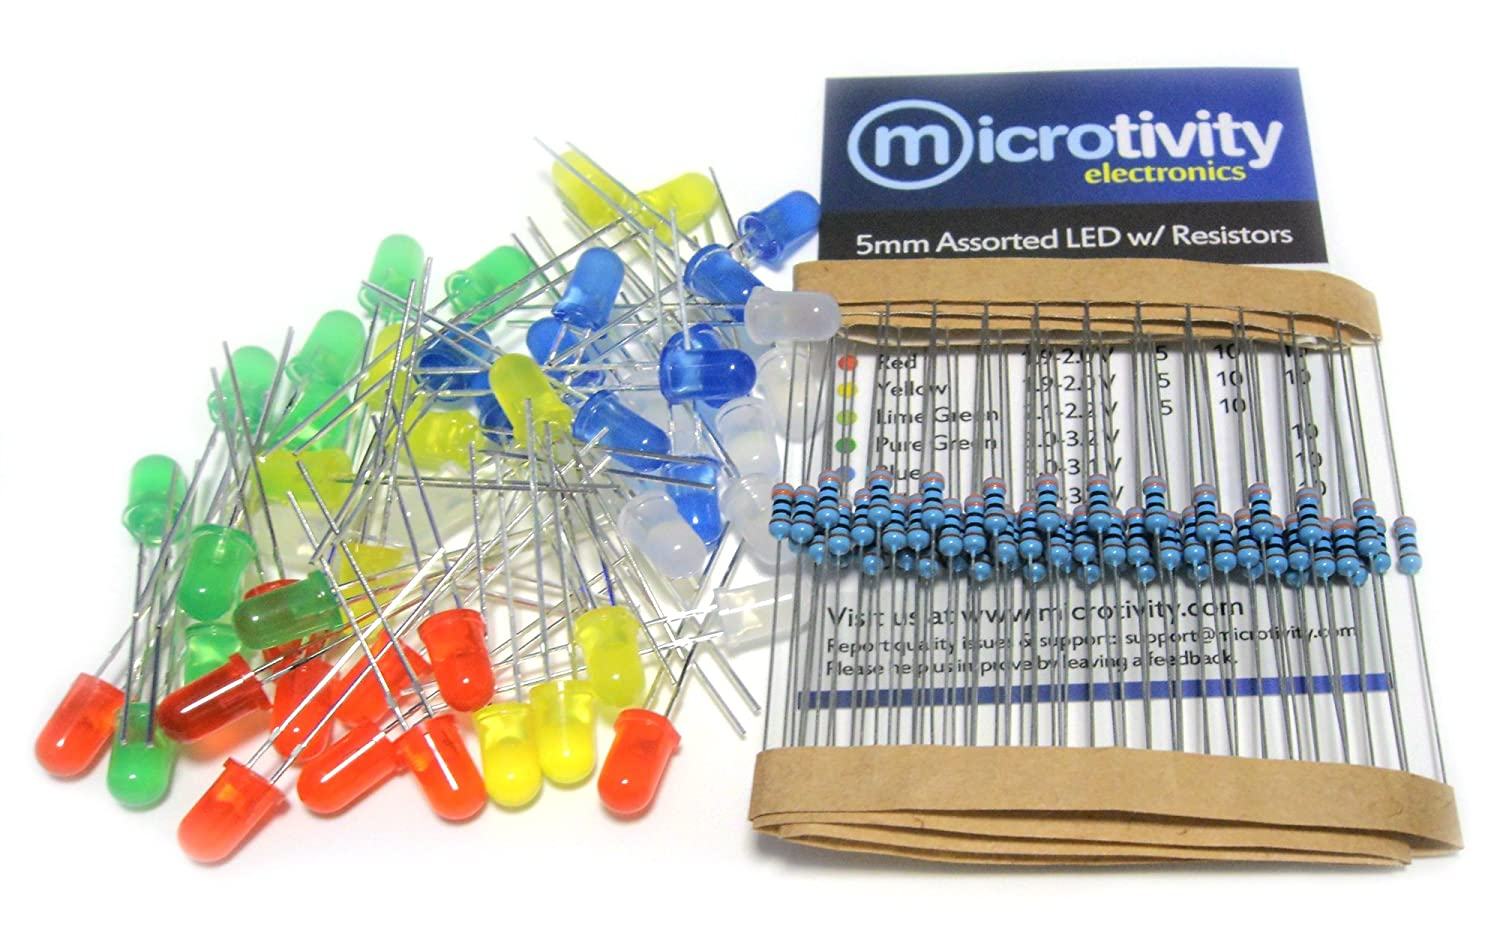 Microtivity Il185 5mm Assorted Diffused Led W Resistors 5 Colors Each Is Connected To A 68 Resistor In Series All Leds Pack Of 50 String Lights Electronics